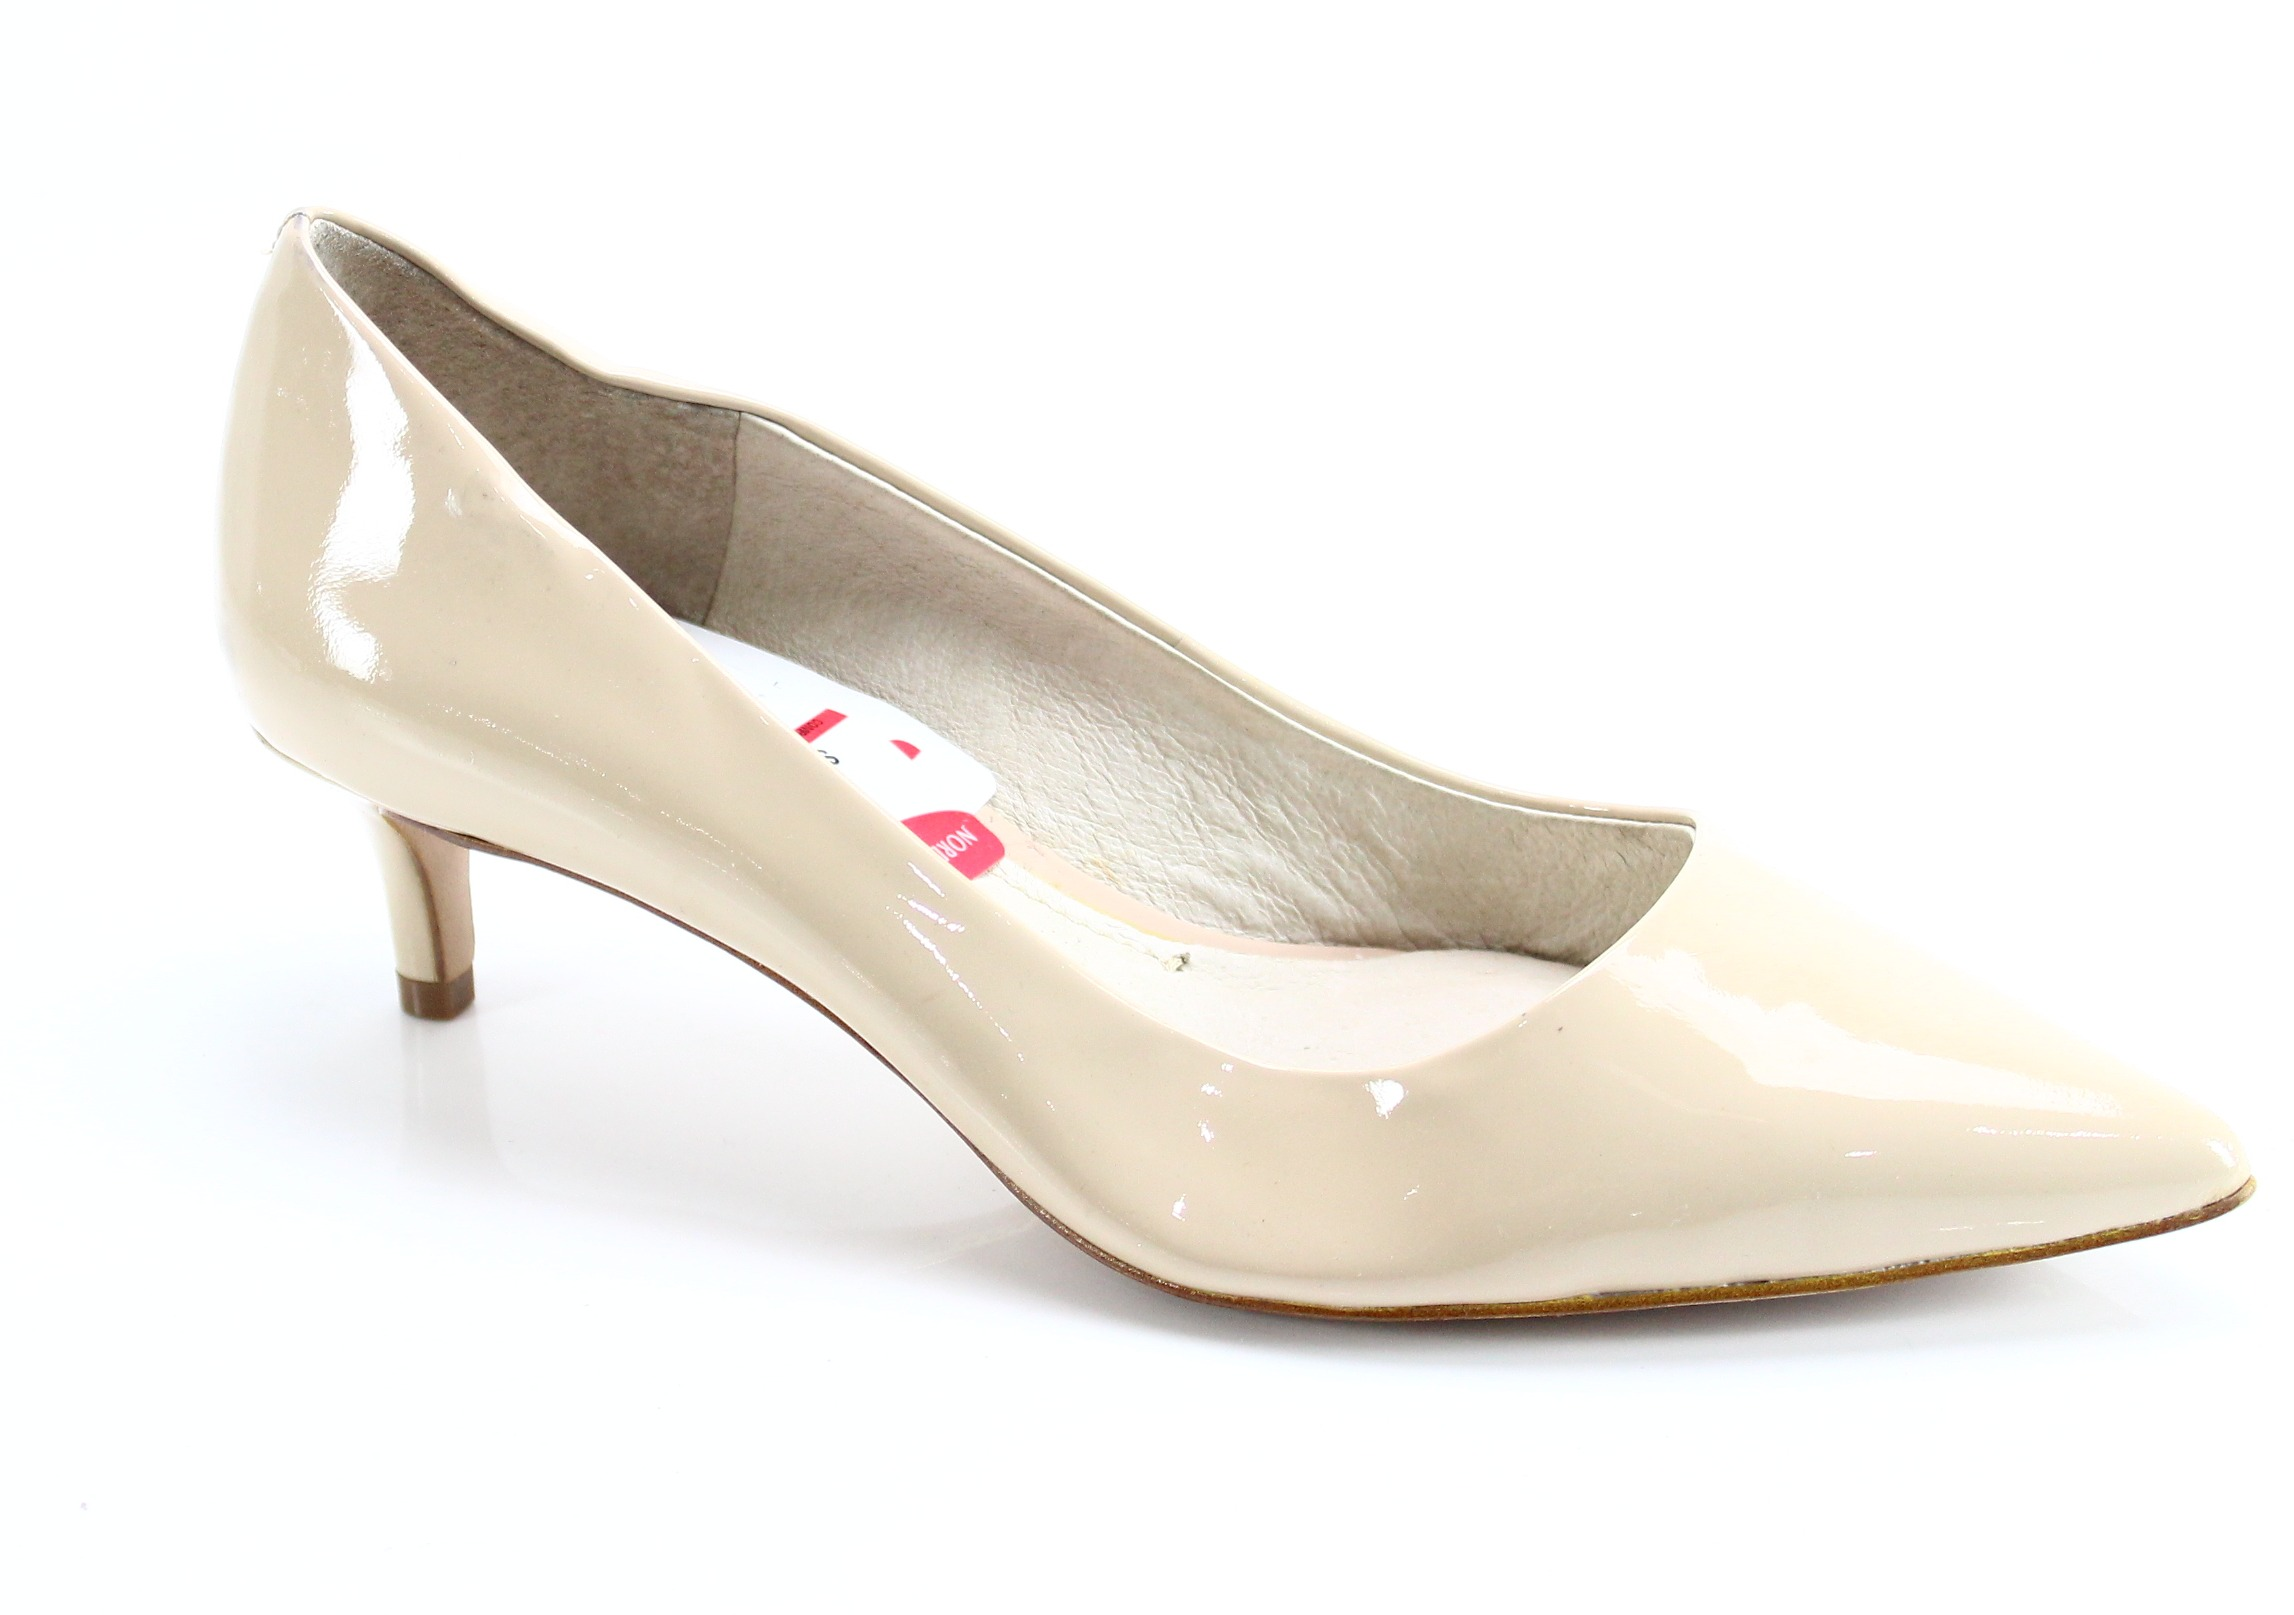 74cf8a74d34 We have more Louise et Cie in Size 6.5 - Click Here Click to see all  Women s Shoes Heels in Size 6.5